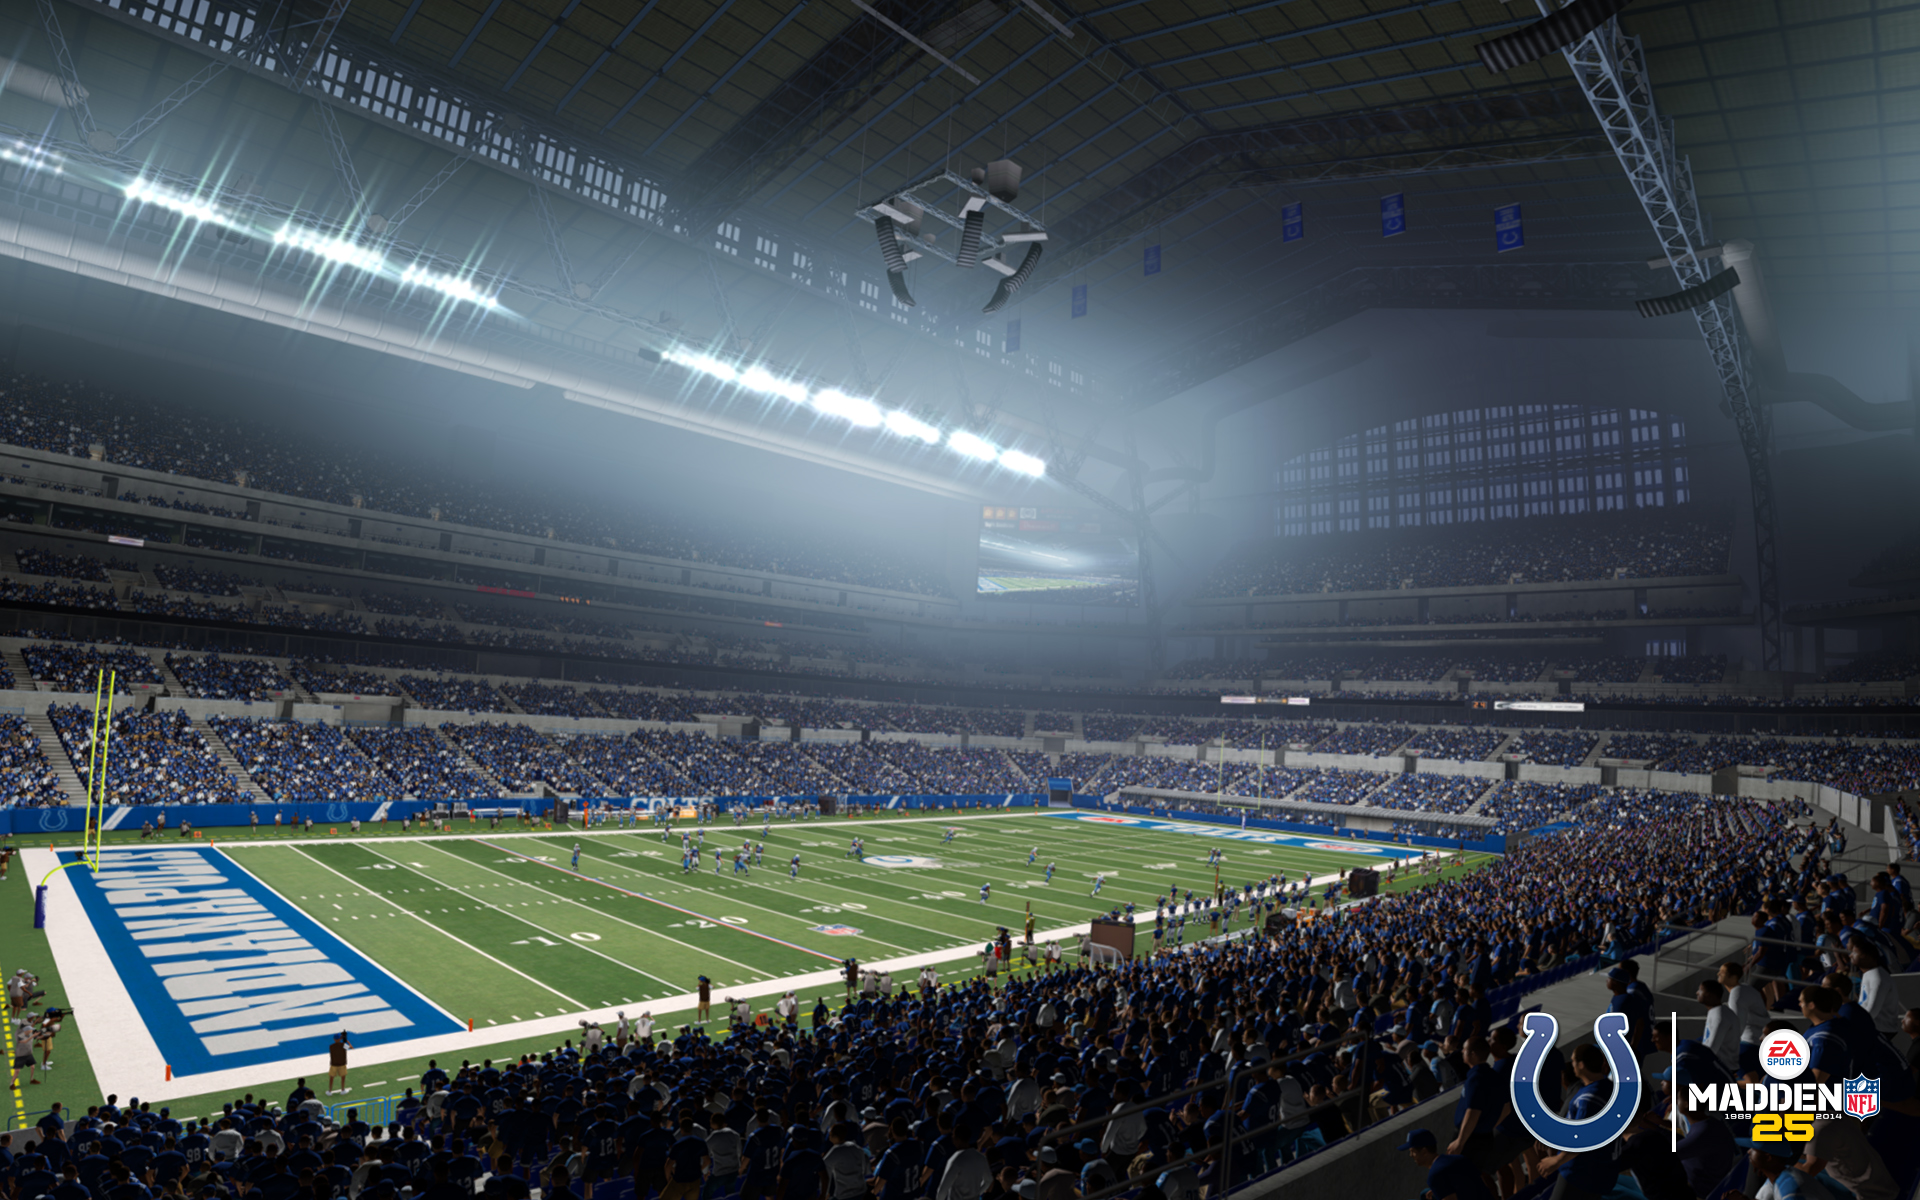 Download Madden NFL Wallpapers and Facebook Covers 1920x1200